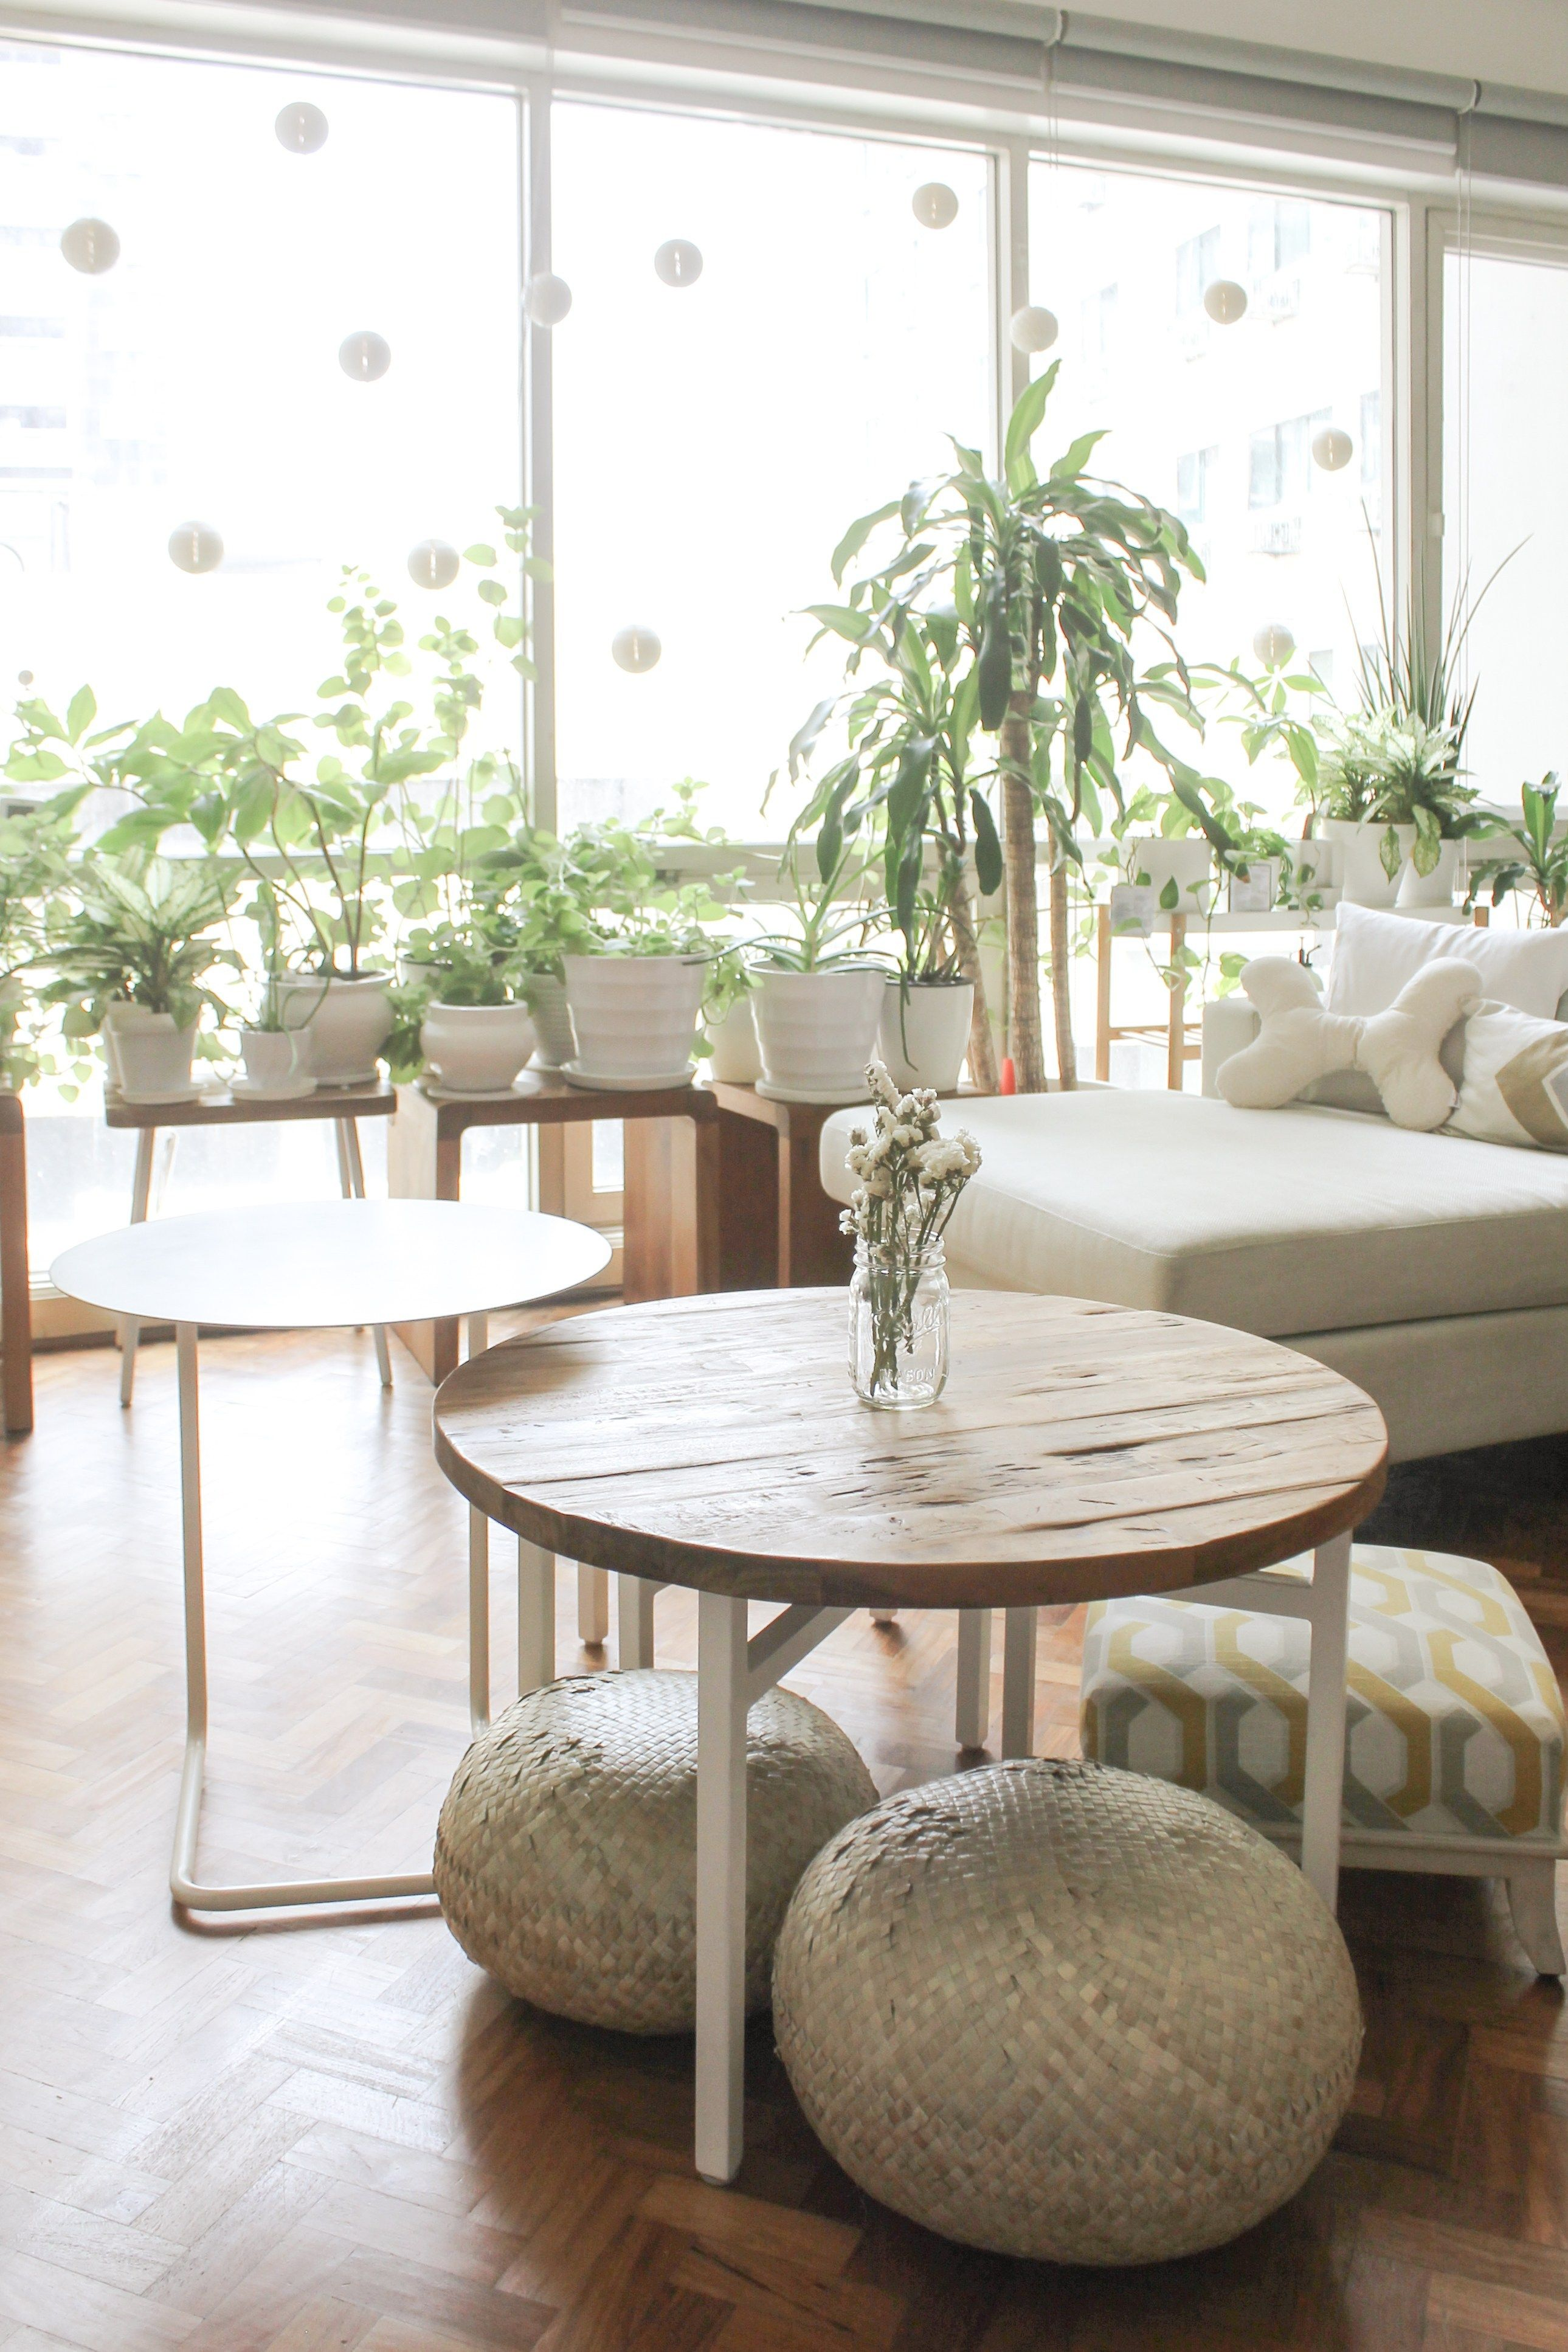 Scandinavian Design Home By A Filipino In Manila Ideas To Learn For Simple Living Scandinavian Design Home Living Etc